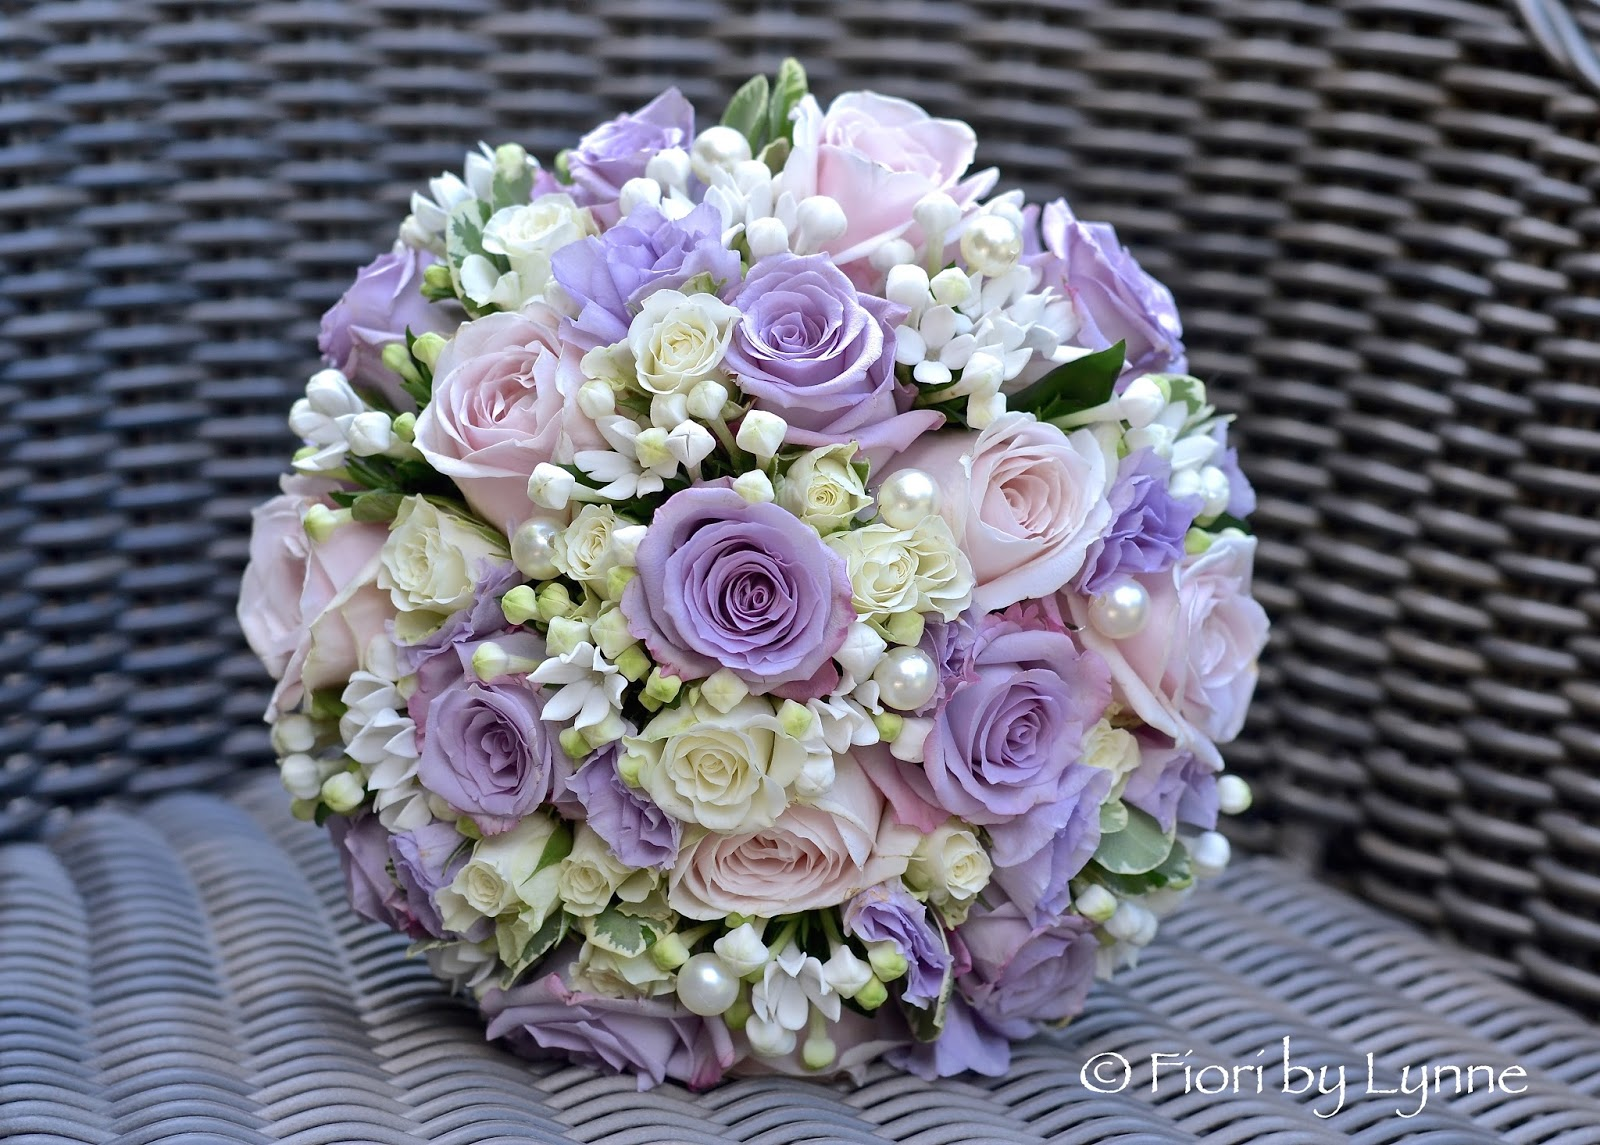 Wedding Flowers Blog: Lara\'s Pink and Lilac Summer Wedding Flowers ...